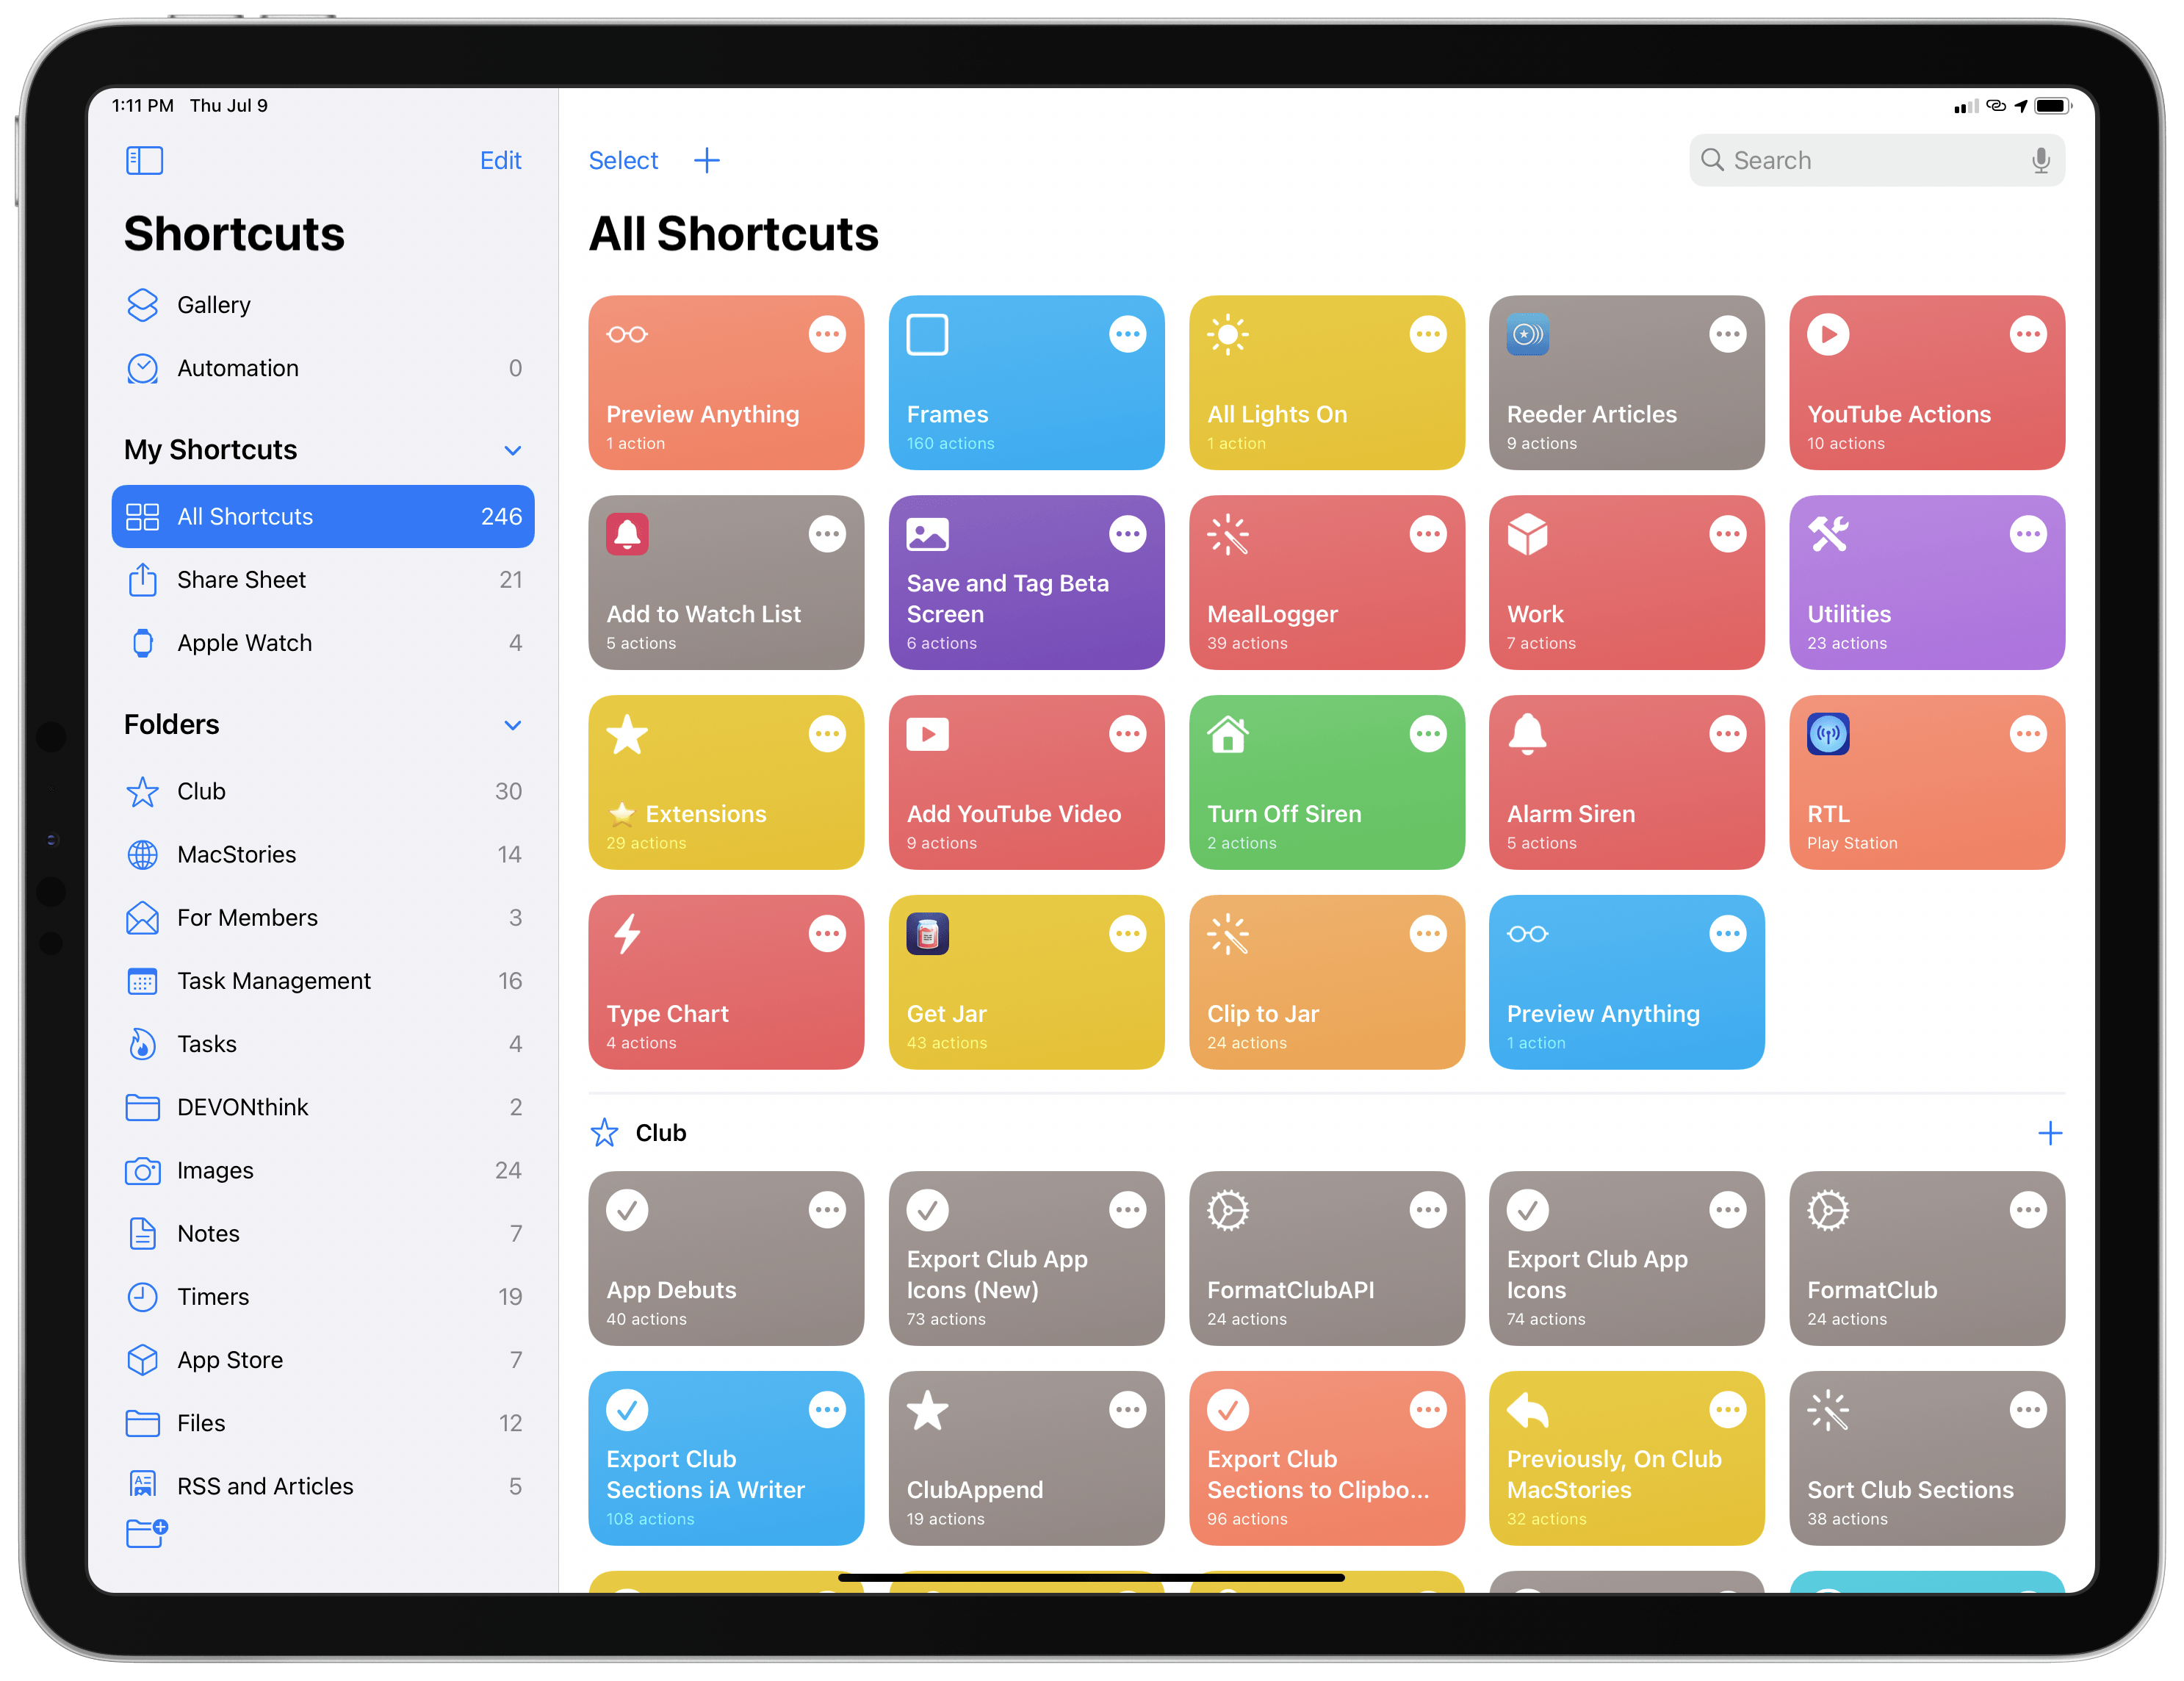 Folders have finally come to Shortcuts in iOS and iPadOS 14; on iPad, folders are available in the app's new sidebar.